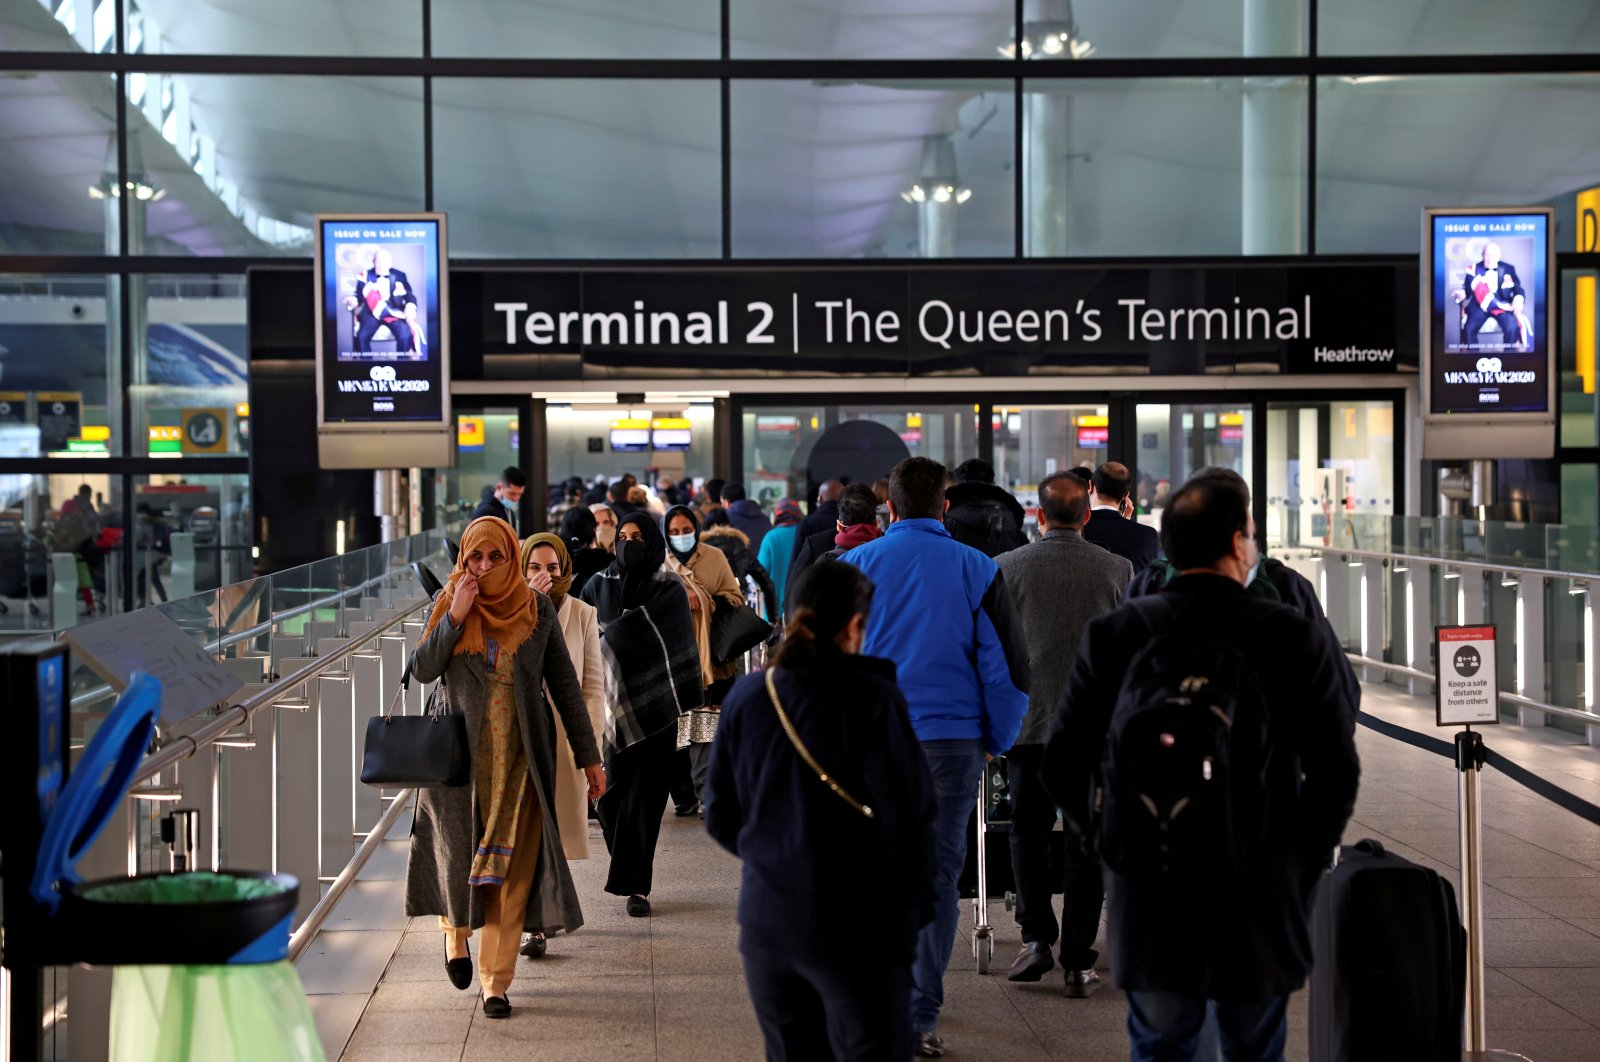 People queue to enter terminal 2 at Heathrow Airport, as tighter rules for international travelers start, amid the spread of the coronavirus disease (COVID-19) pandemic, London, U.K., Jan. 18, 2021. (Reuters Photo)